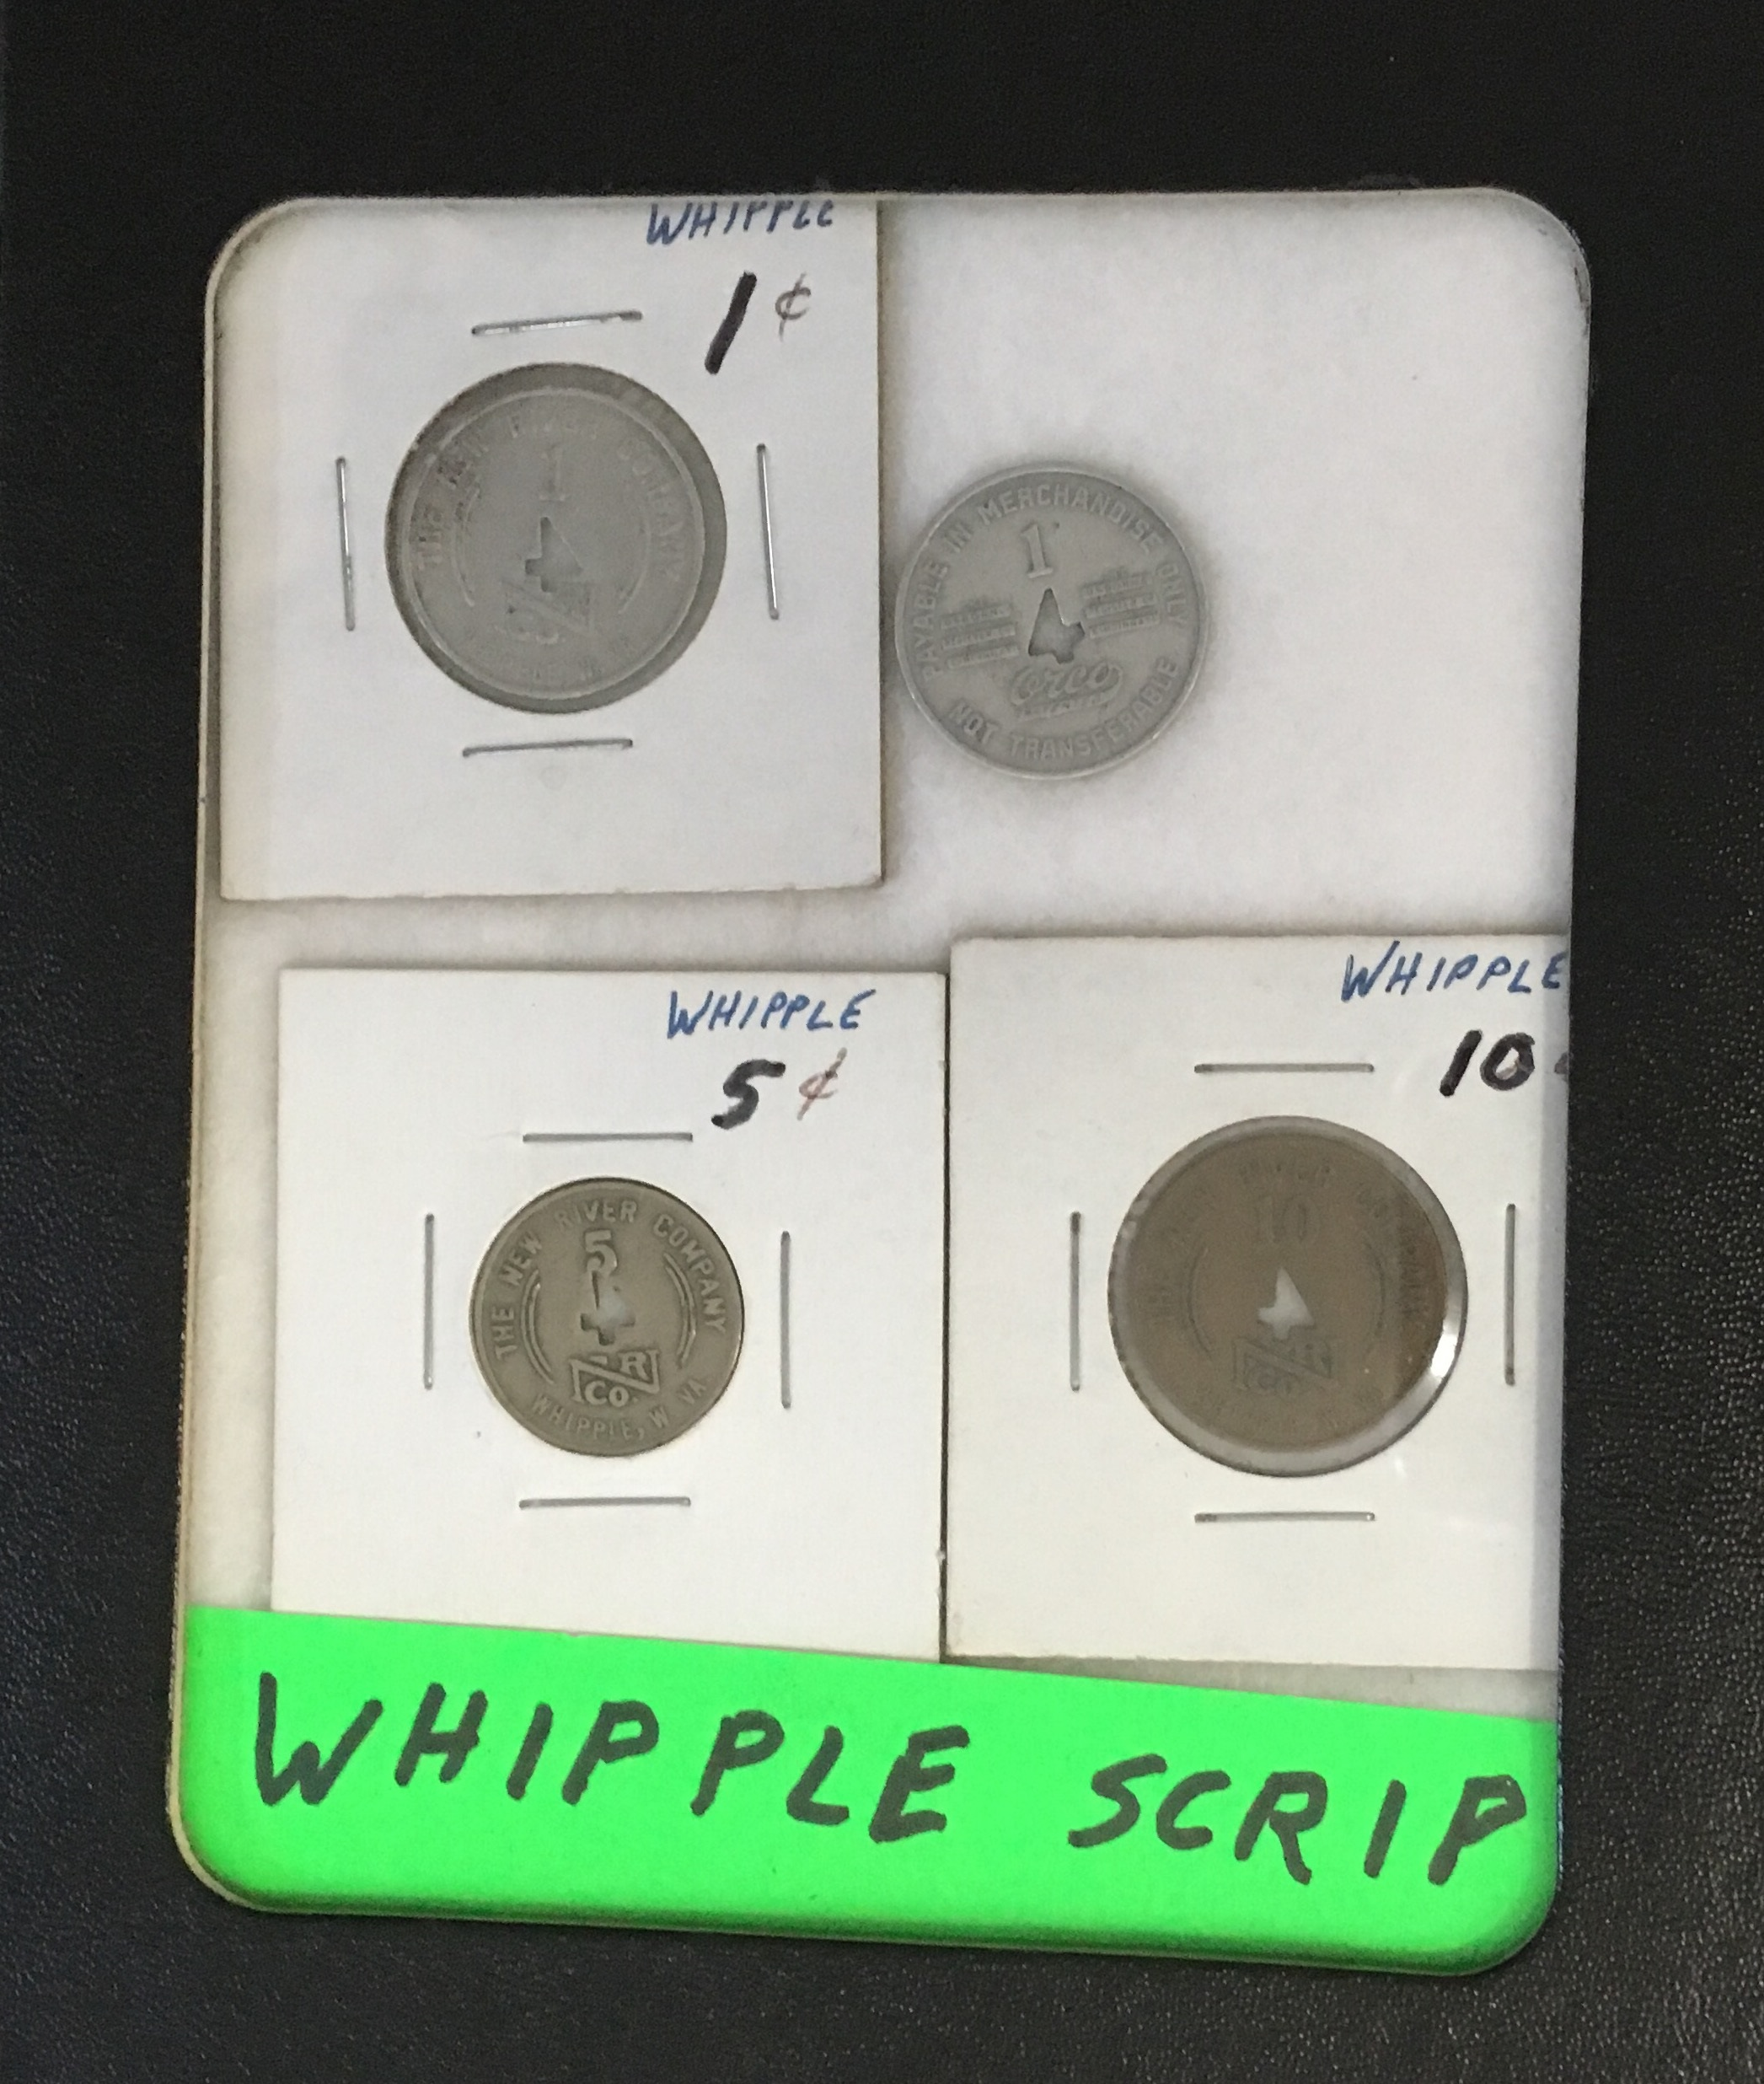 Whipple Scrip. Miners and their families would use the scrip at the company store to purchase goods. Picture by: Cassaundra J. Vincent